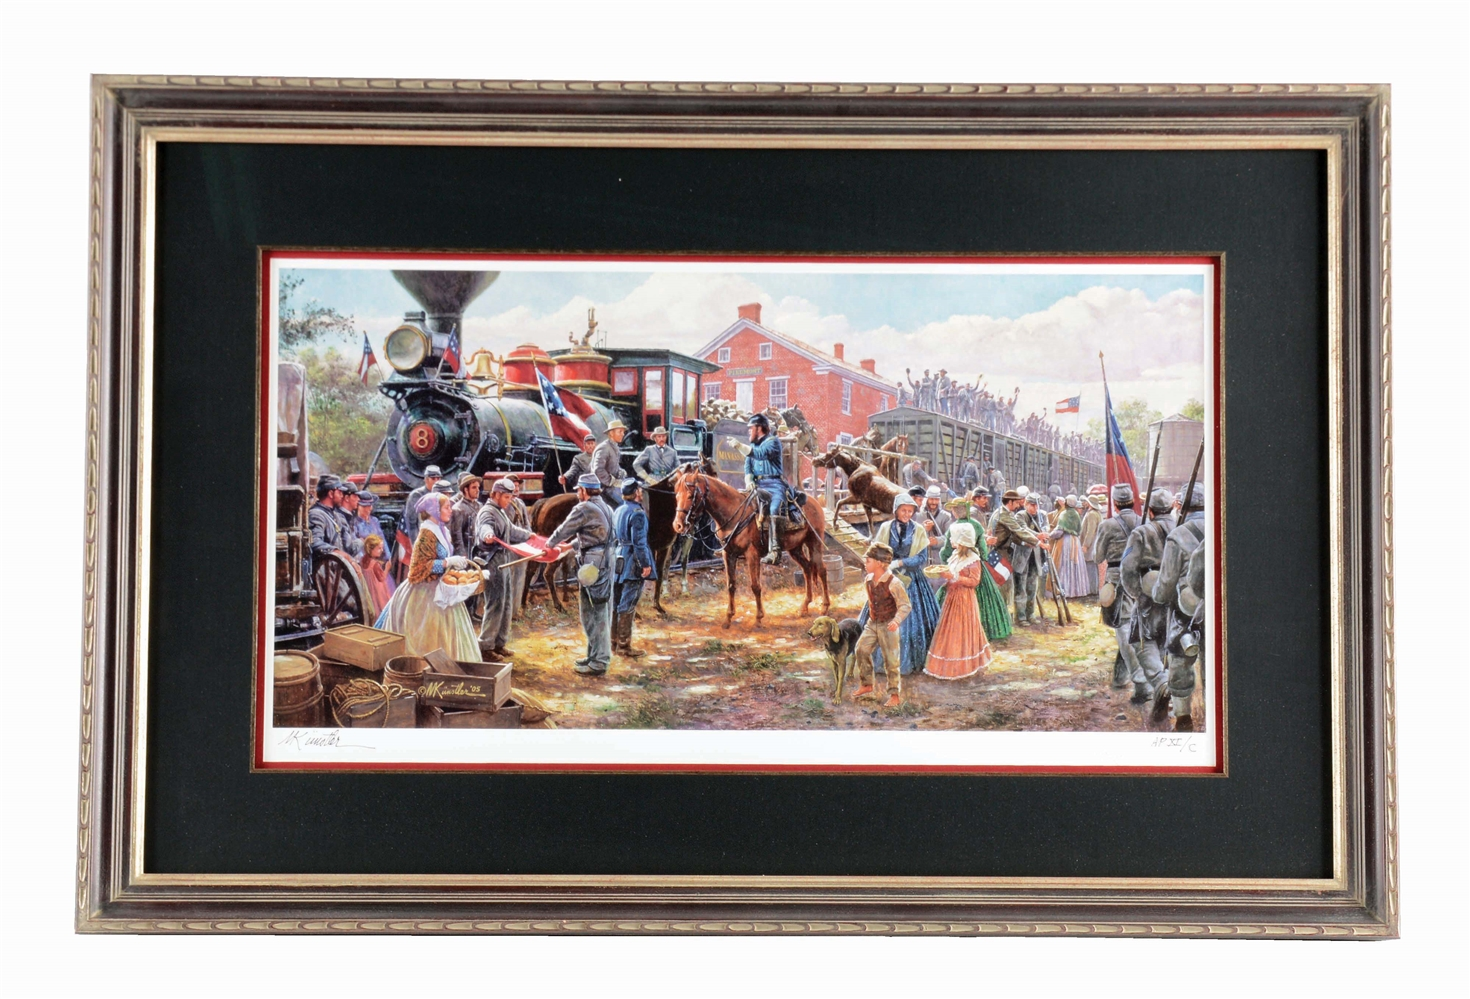 "ARTIST PROOF MORT KUNSTLER ""VICTORY RODE THE RAILS"" MUSEUM QUALITY FRAMED PRINT."